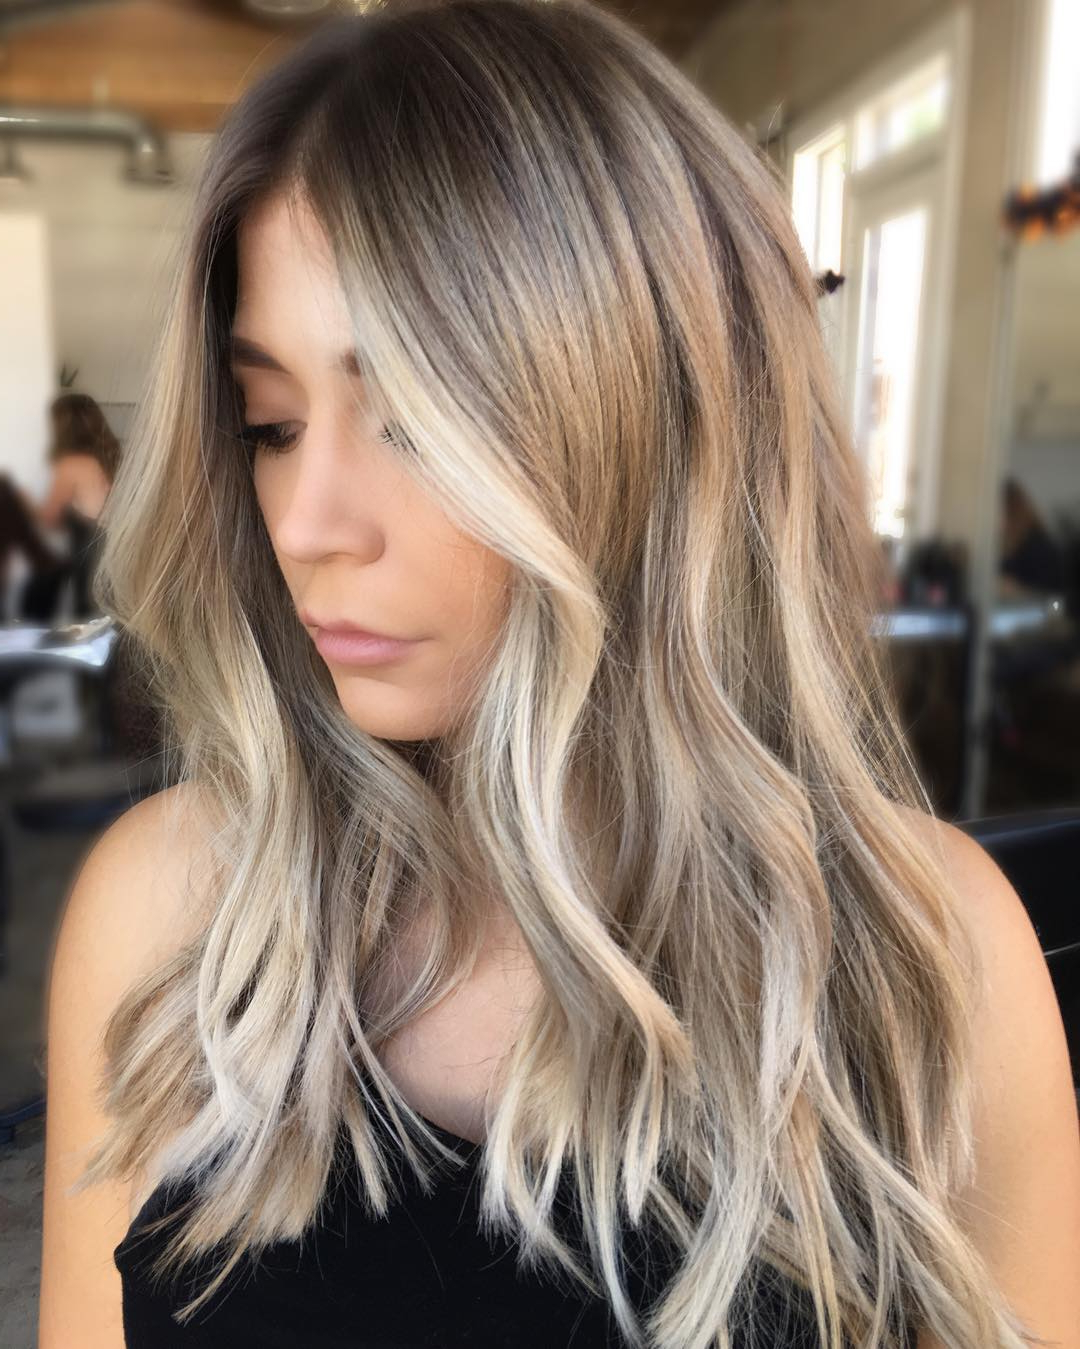 10 Ash Blonde Hairstyles For All Skin Tones 2020 For Most Popular Delicate Light Blonde Shag Haircuts (View 9 of 20)